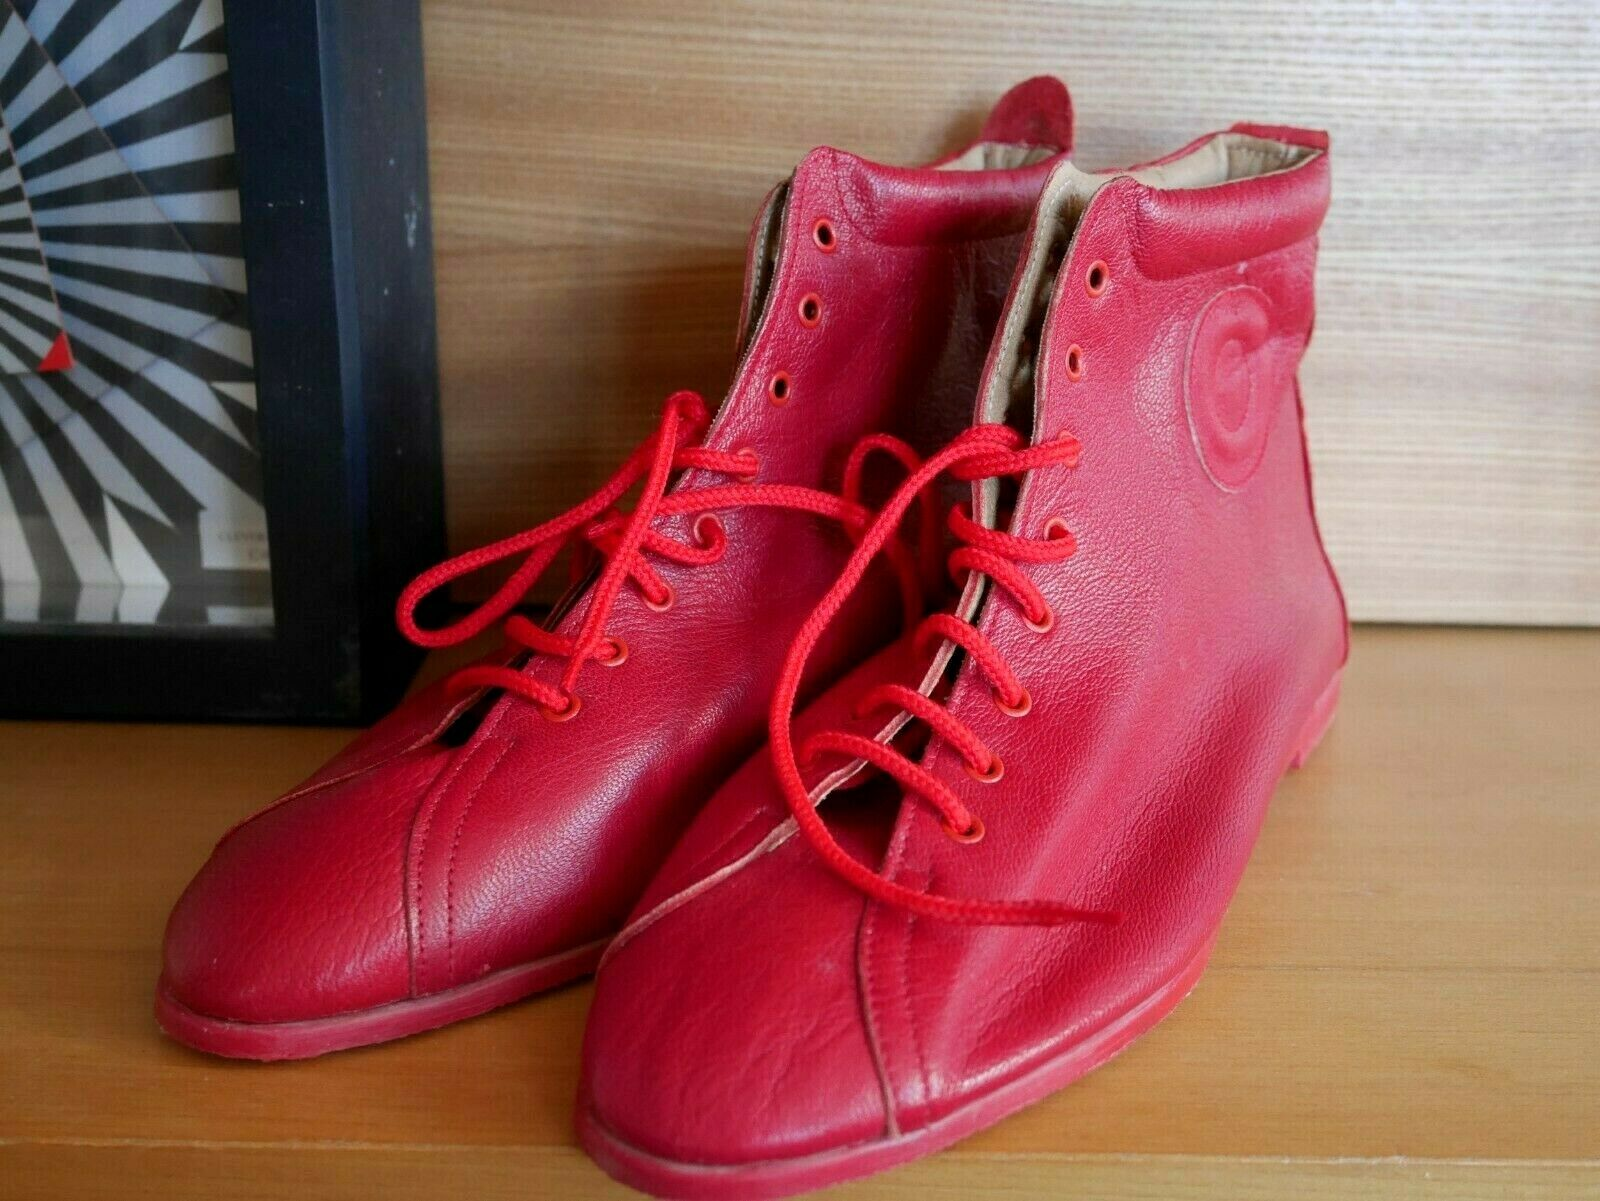 Mowgli 38 Boots Red Lace Up shoes Sneaker 80er Leather True Vintage Lace Up shoes